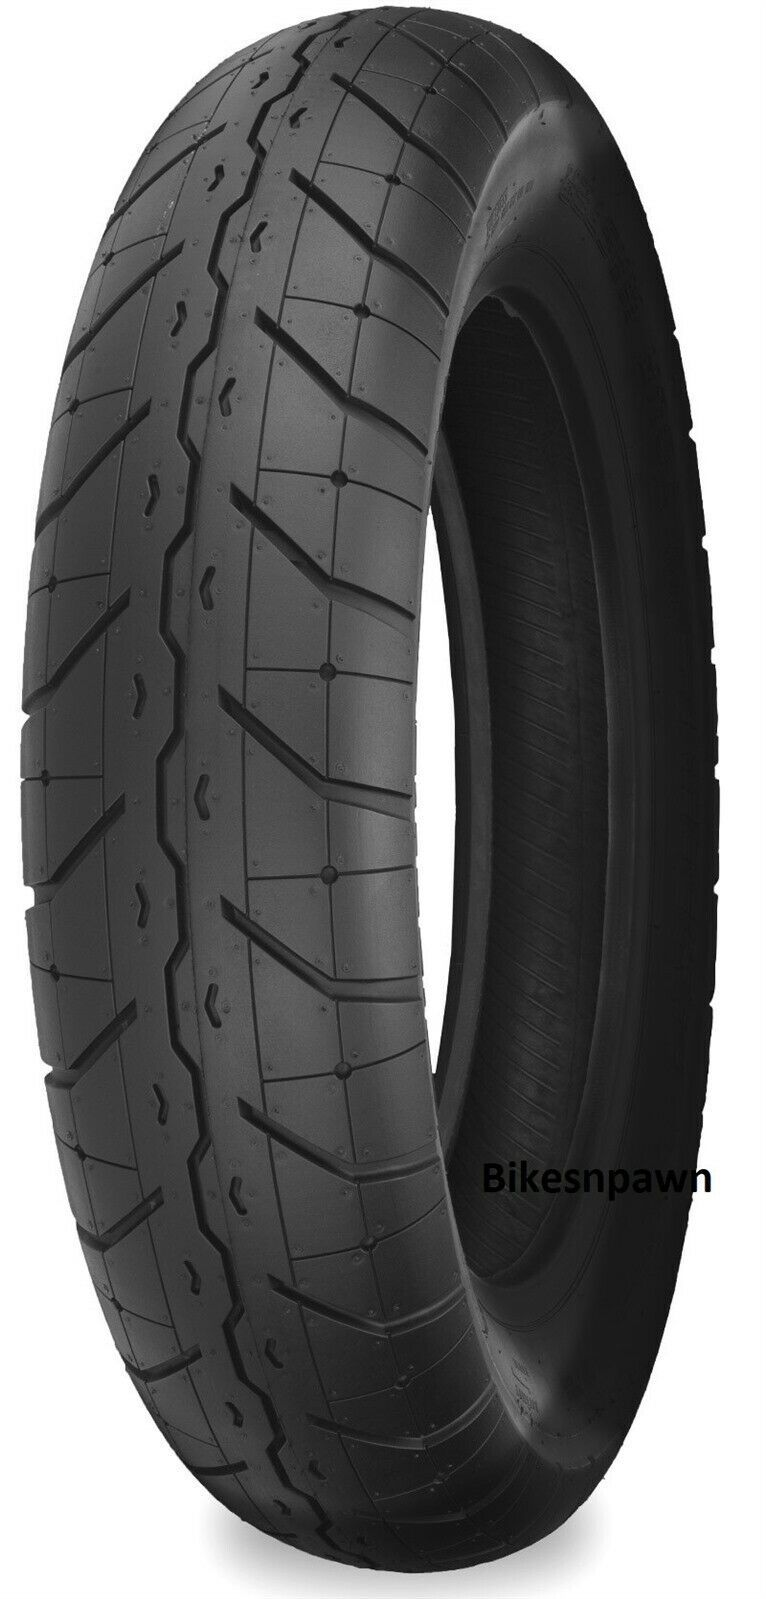 New Shinko 230 Tour Master 80/90-21 Front Motorcycle Tire 48H